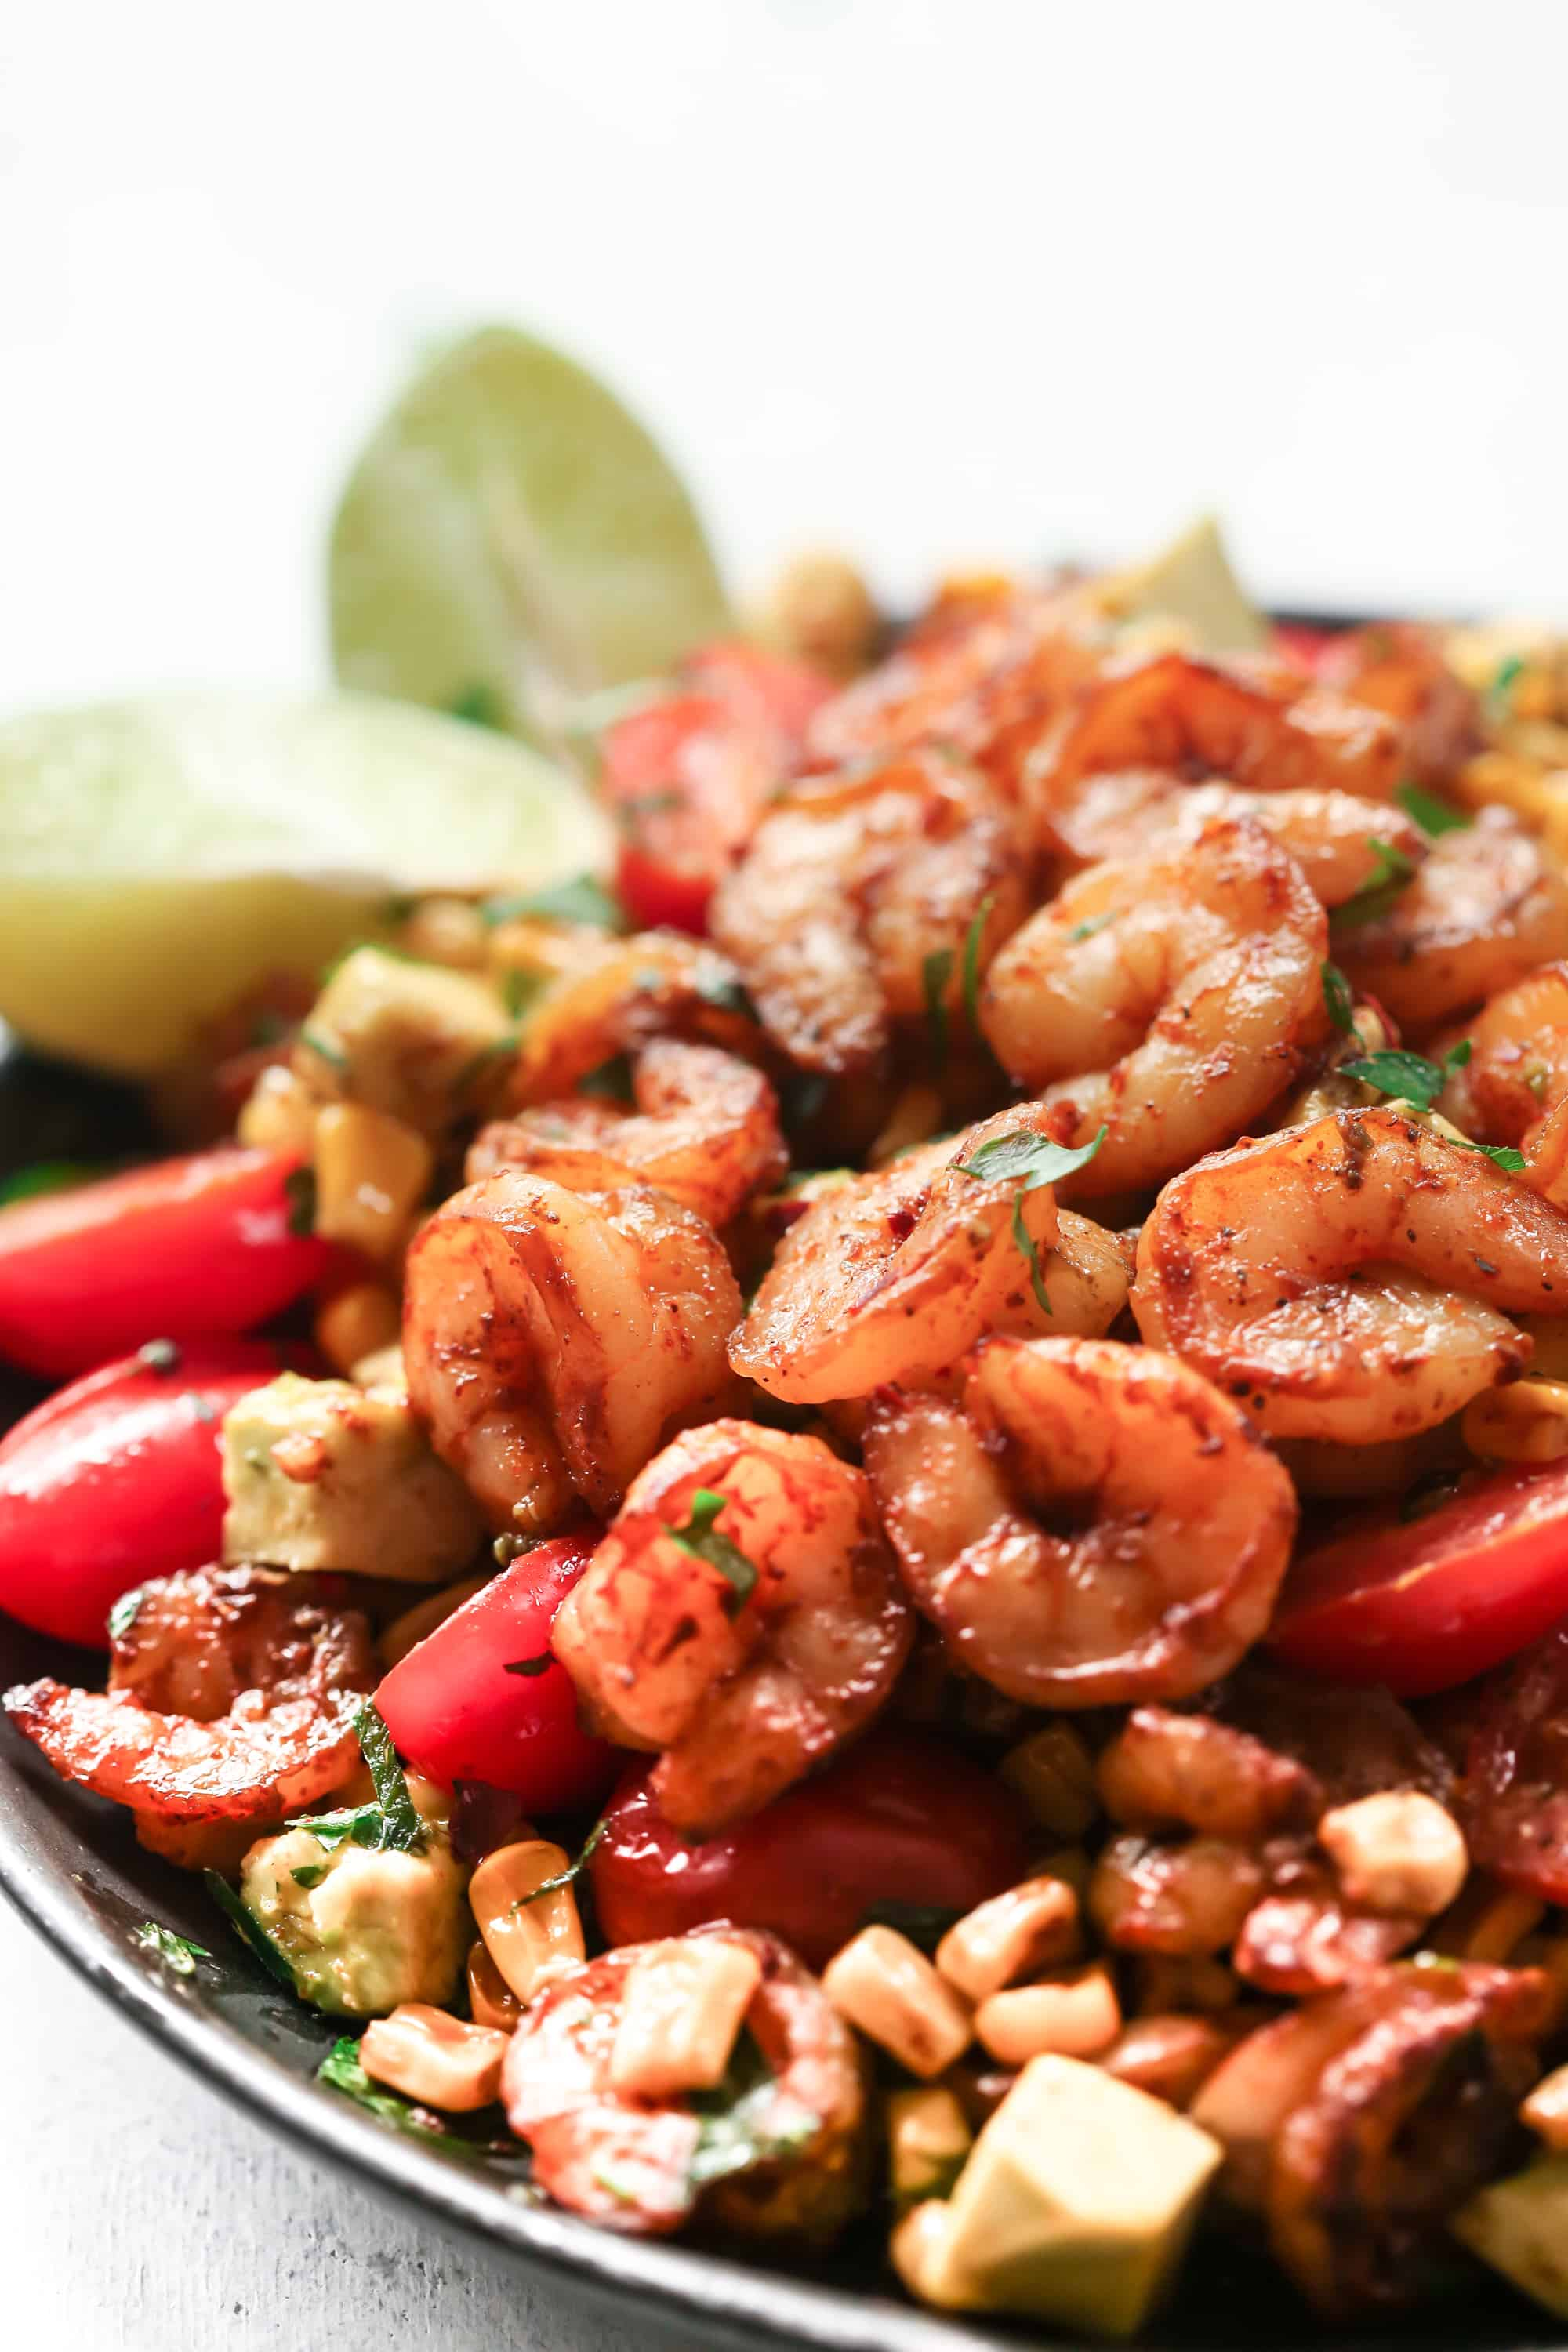 Enjoy this refreshingCorn Shrimp Salad - Corn Shrimp Salad Recipe with a light lime dressing as a side for any meal during summertime.